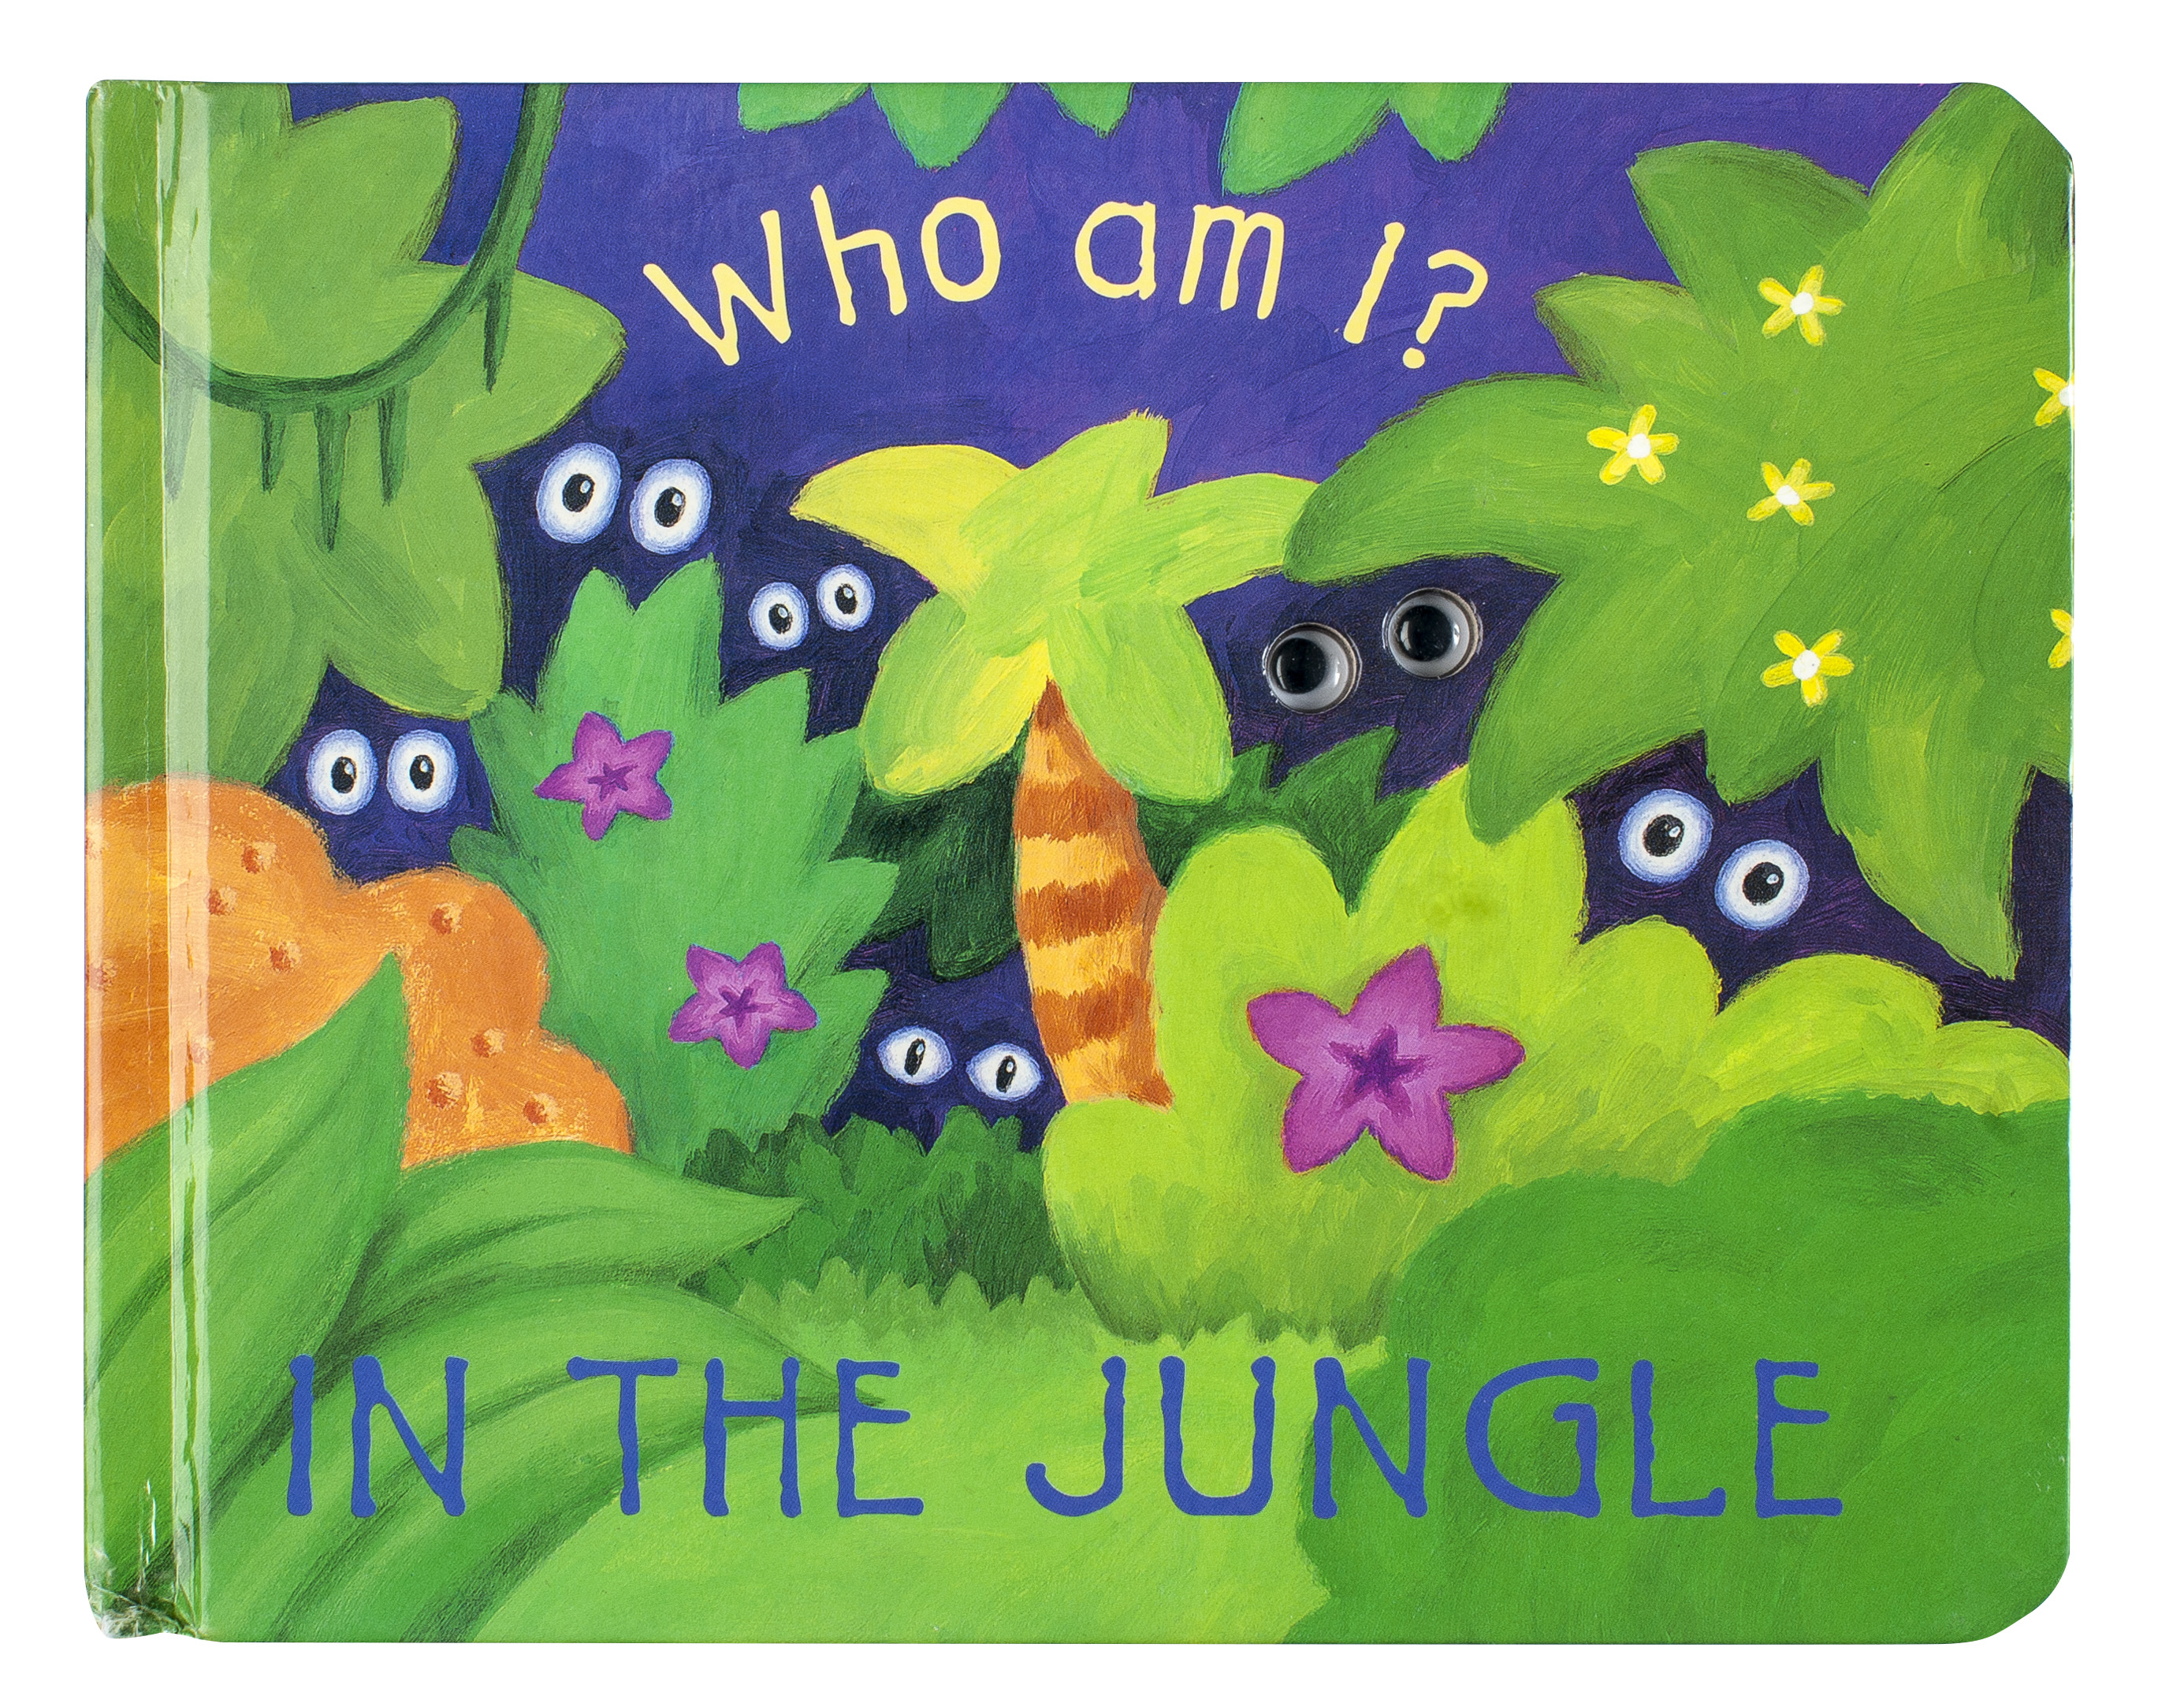 Who am I? In the jungle